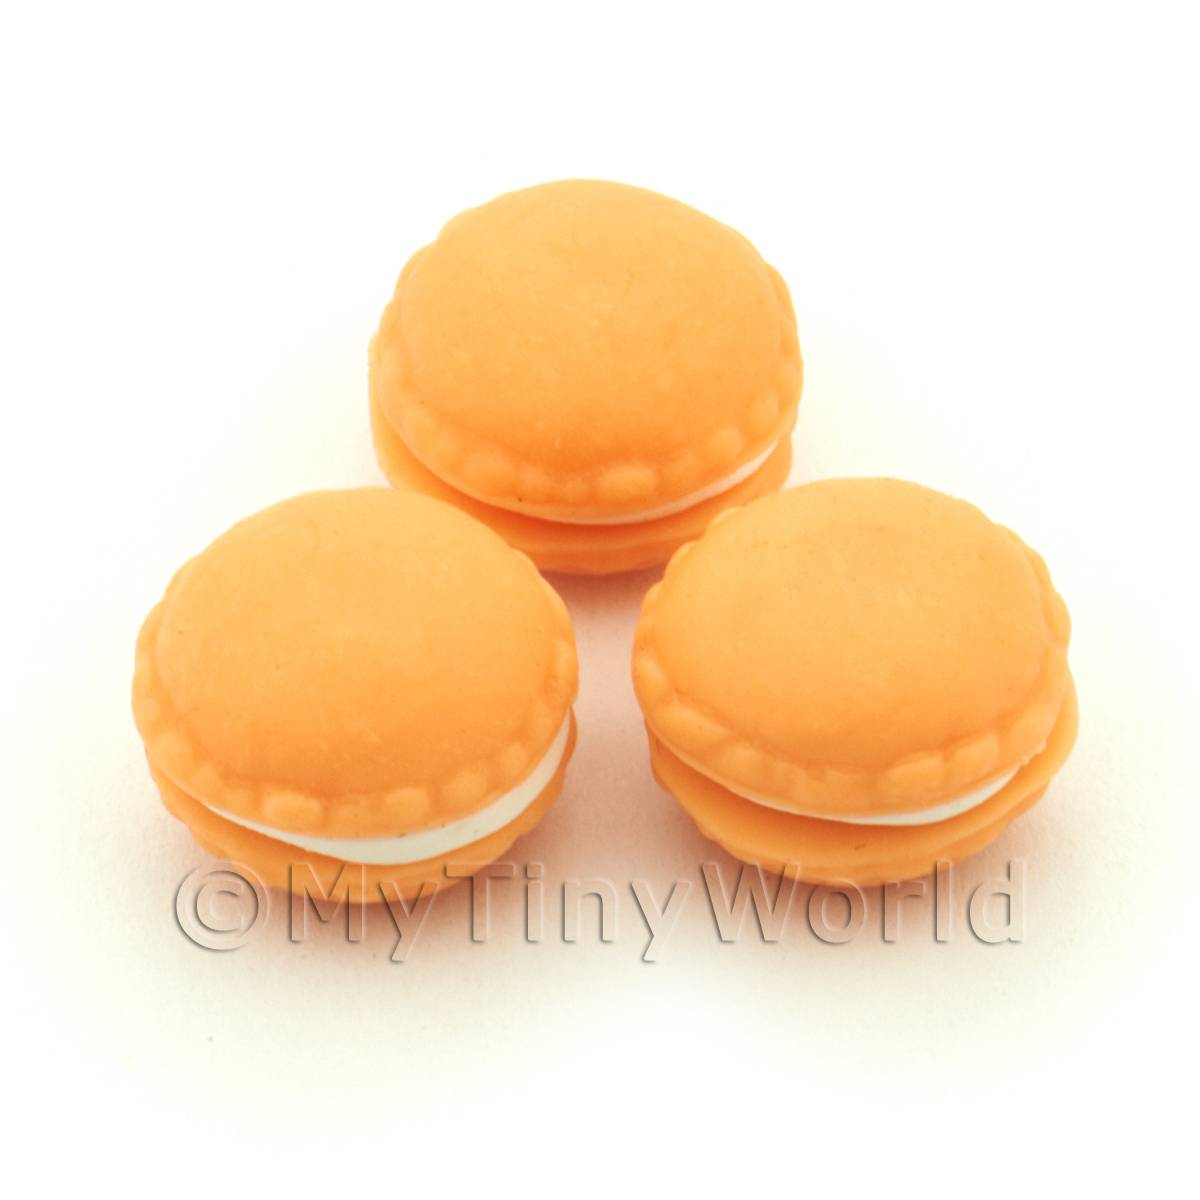 Handmade Orange Macaroon For Jewellery And Charms